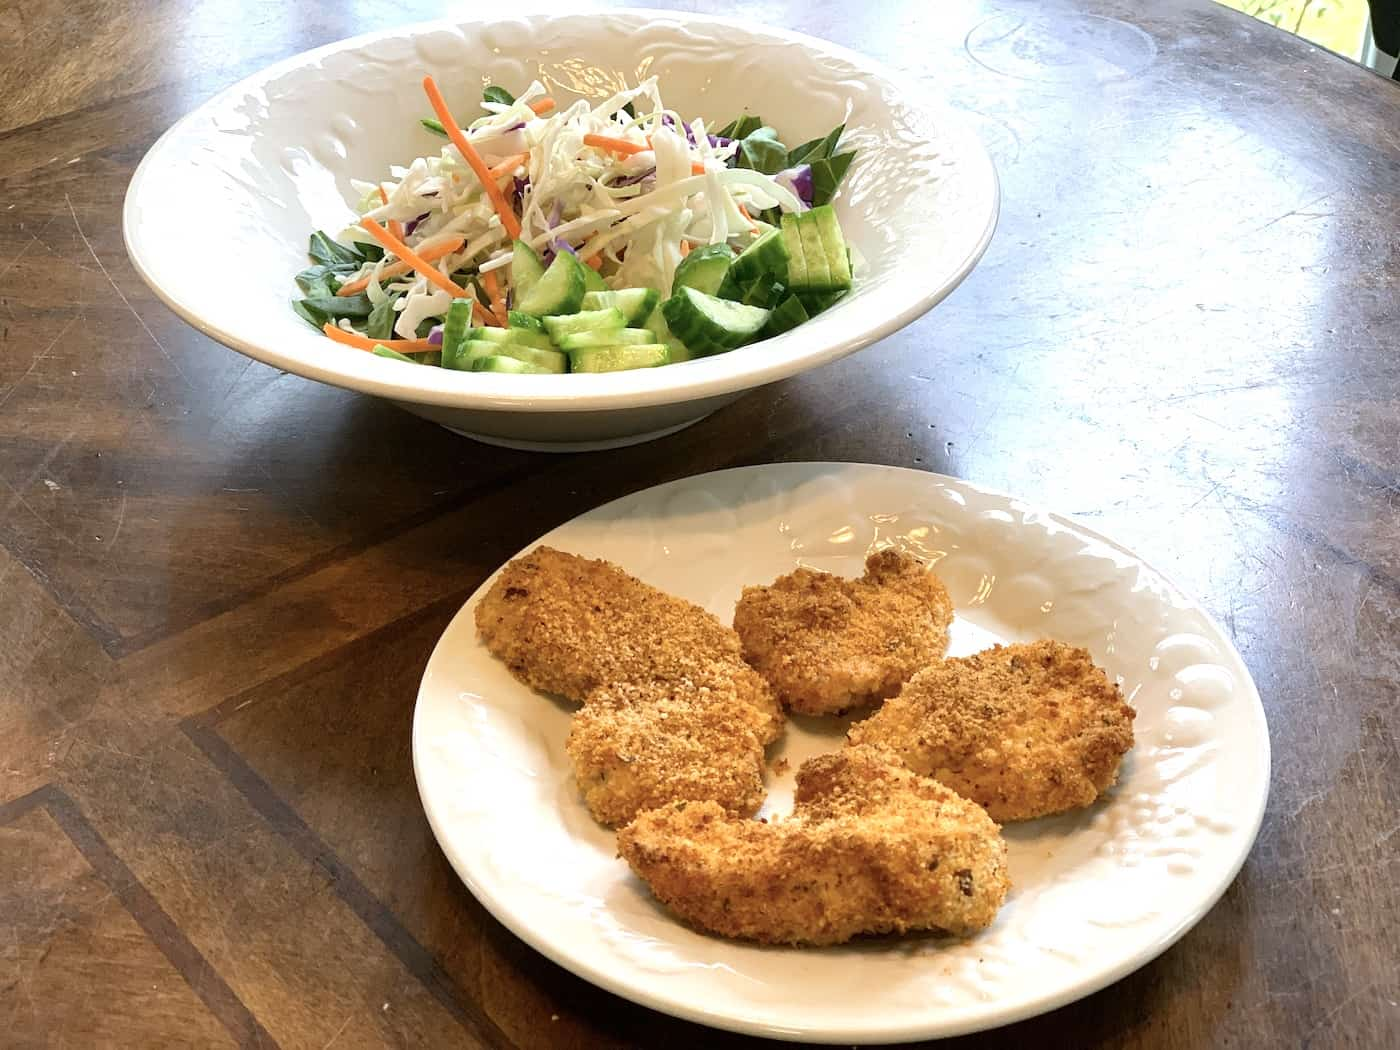 gf chicken tenders from air fryer with salad 25 Air Fryer Chicken Recipes to Add to Your Monthly Meal Plan